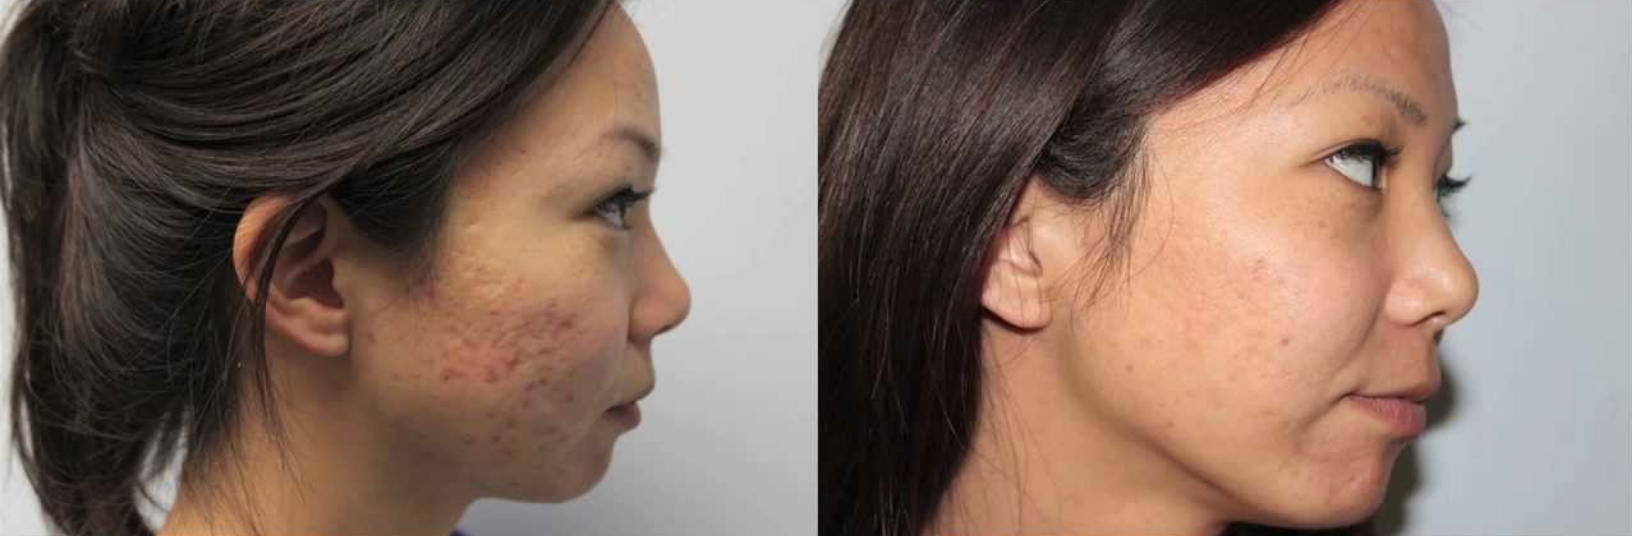 ipl laser acne treatment